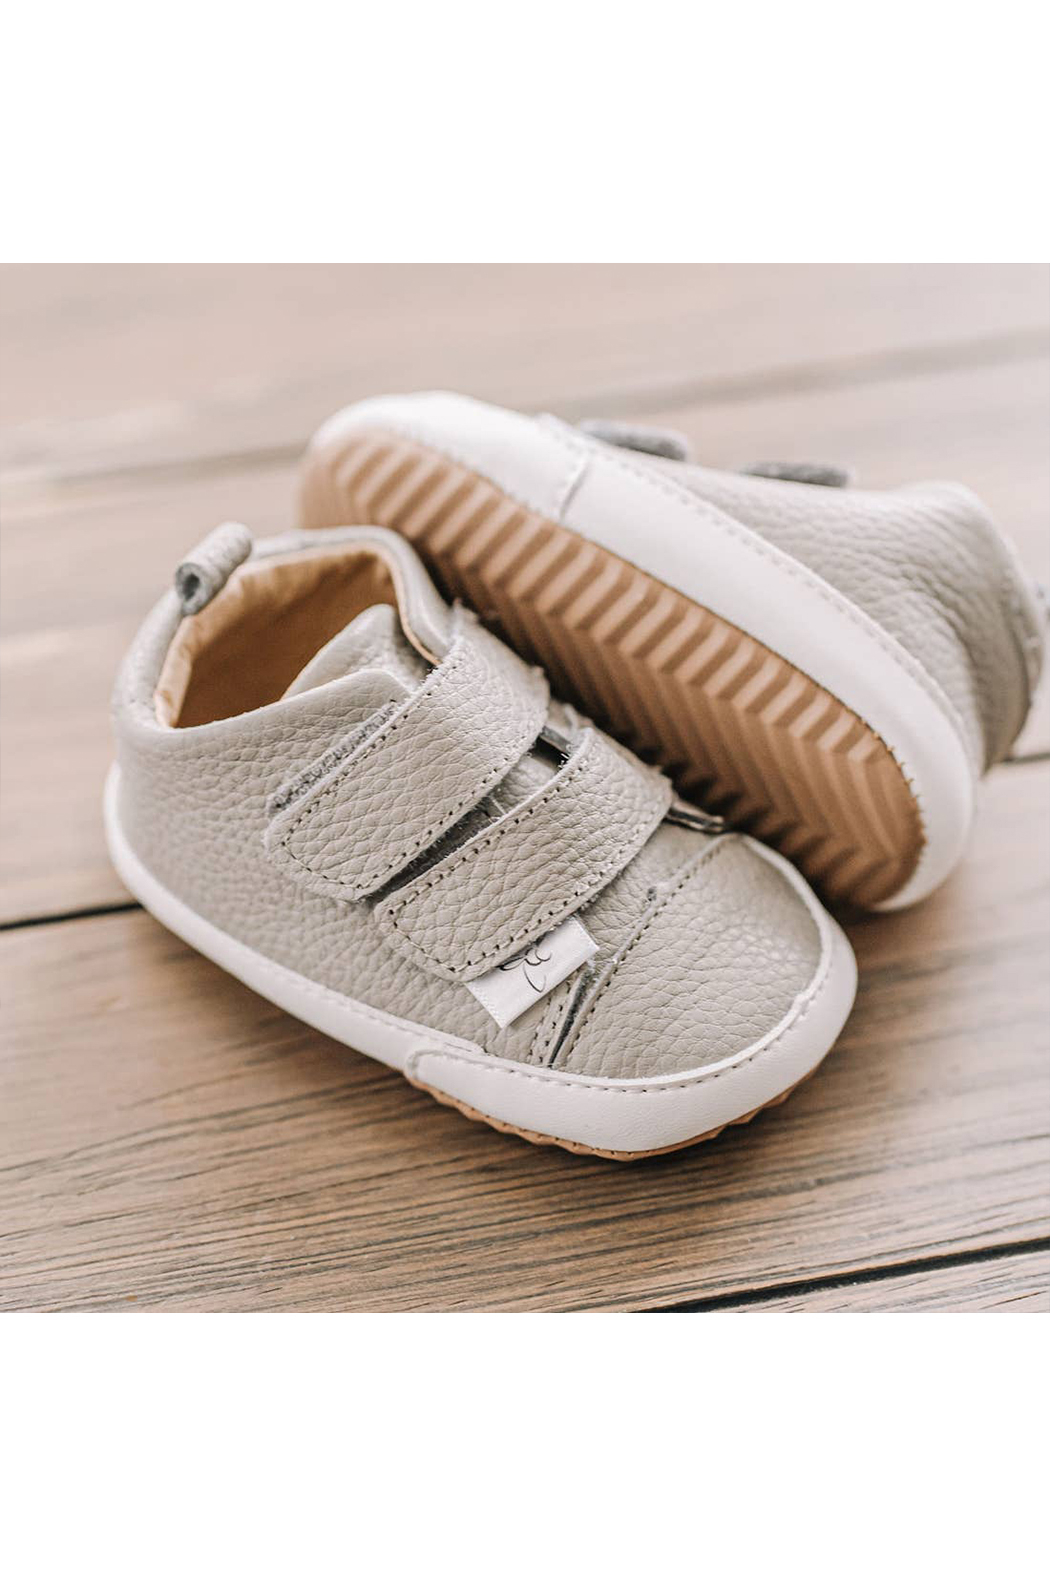 Little Love Bug Company Casual Grey Low Top Moccasin - Side Cropped Image